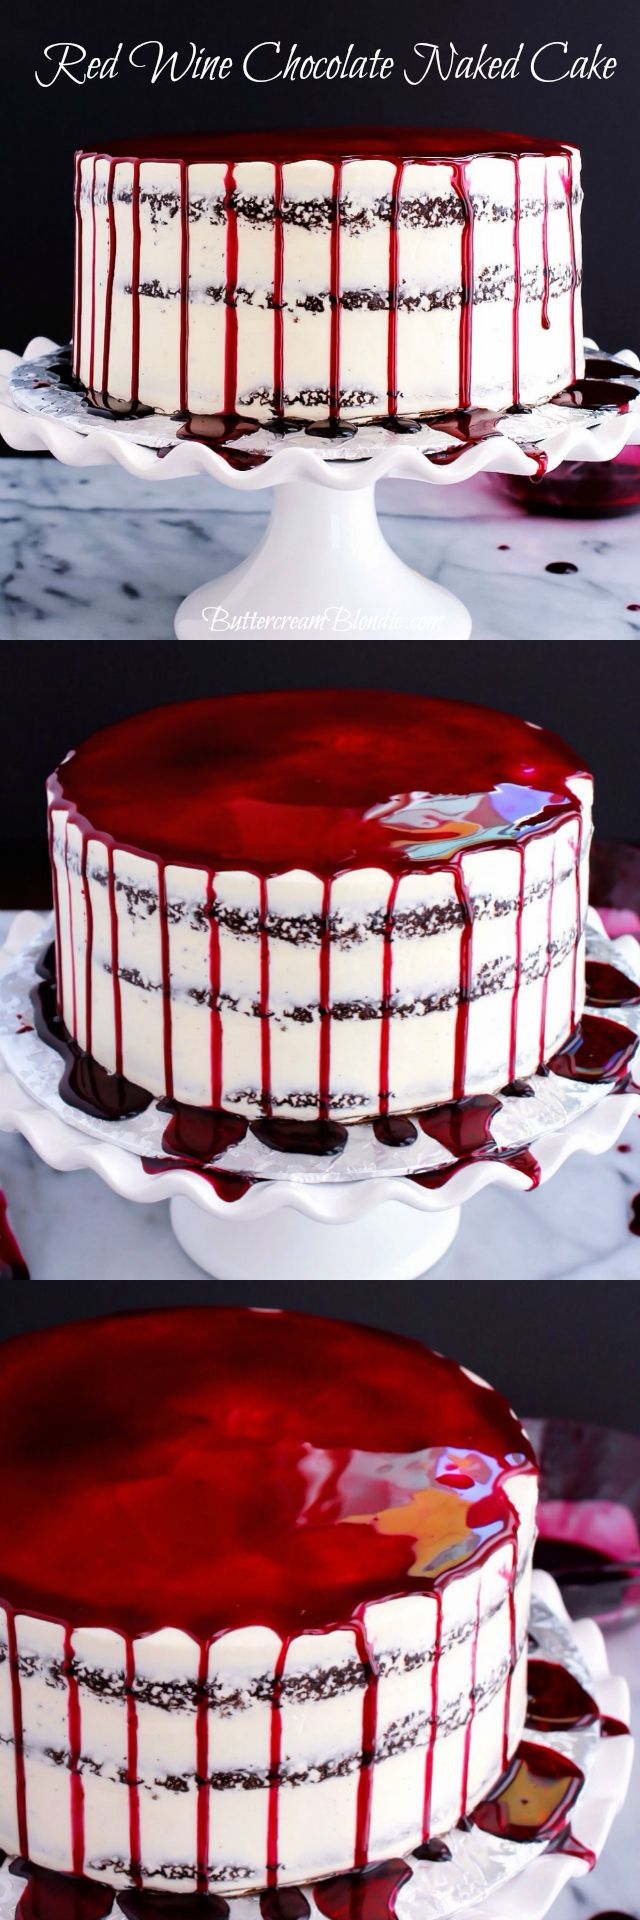 Red Wine Chocolate Naked Cake - Red wine chocolate cake filled with vanilla bean mascarpone frosting and topped with a sweet wine reduction is a party waiting to happen!   ButtercreamBlondie.com